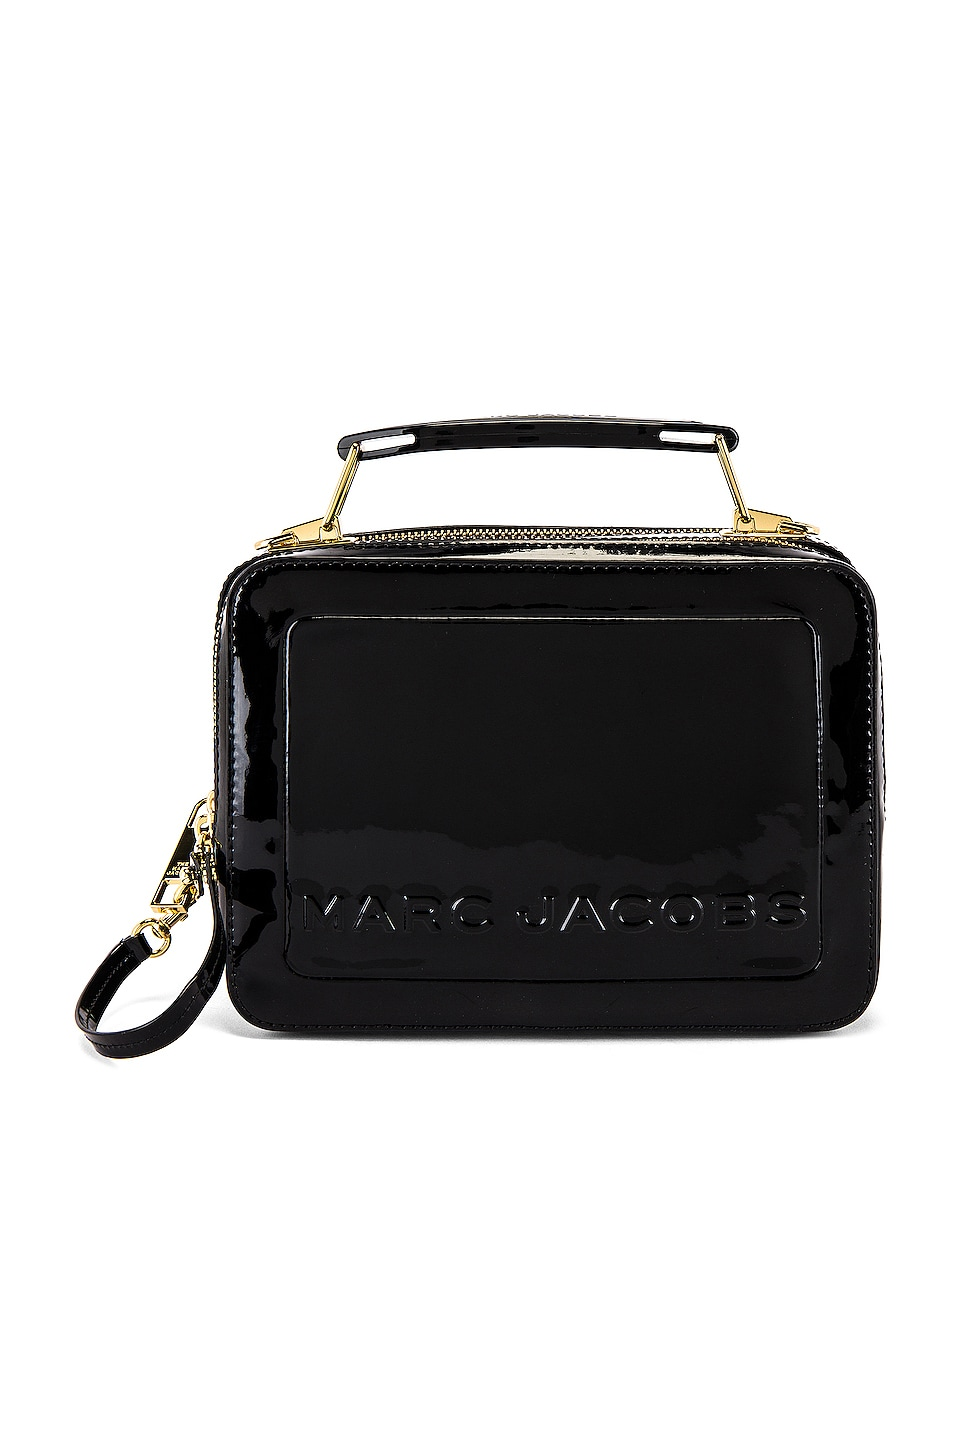 Marc Jacobs The Box 23 Patent Bag in Black